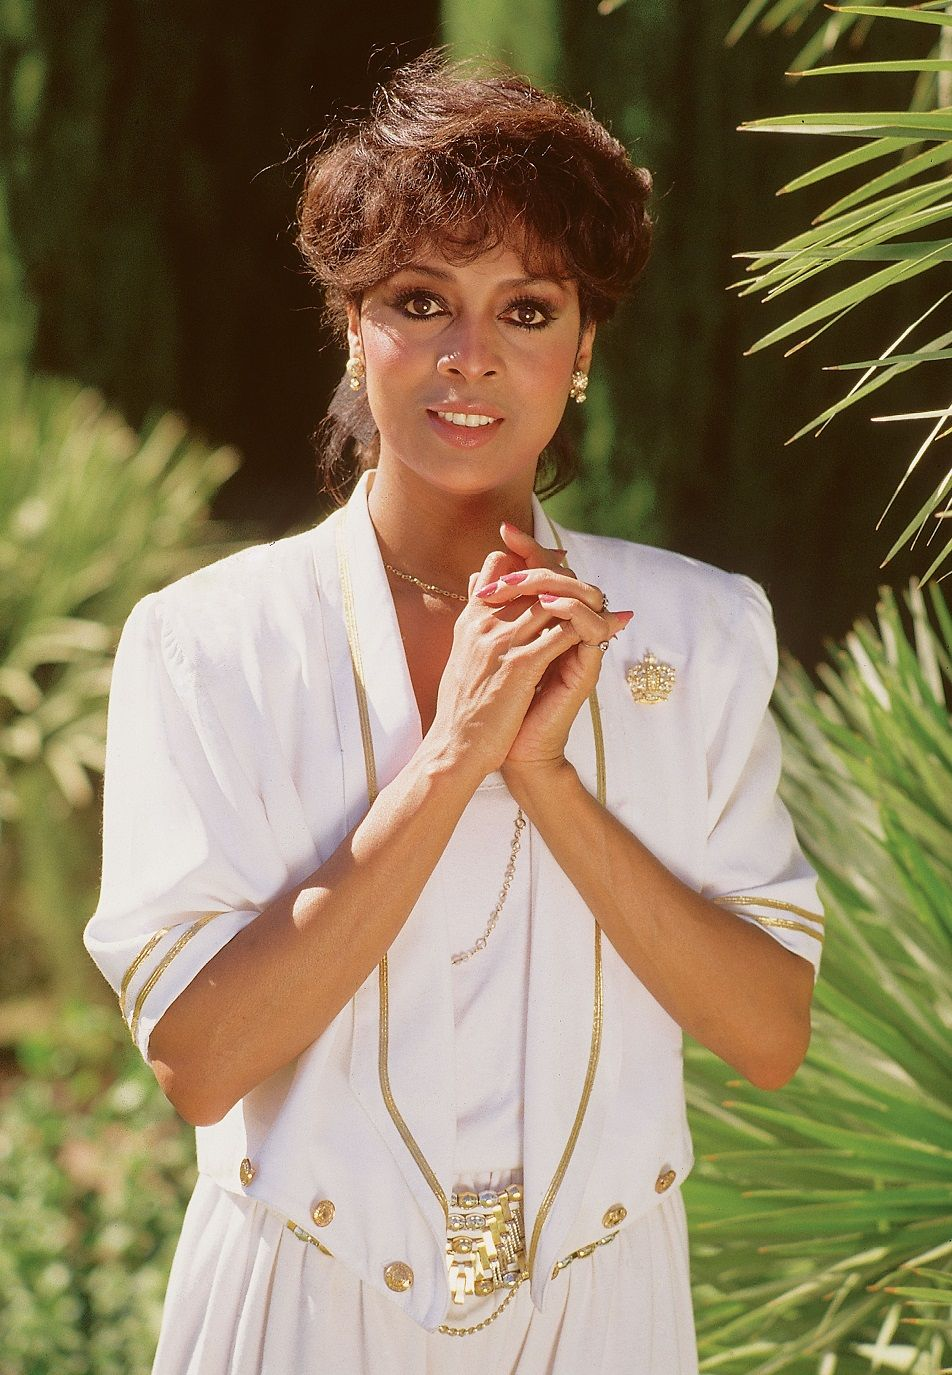 Images Of Lola Falana Amazing lola falana | 112 re lola falana picture appreciation thread